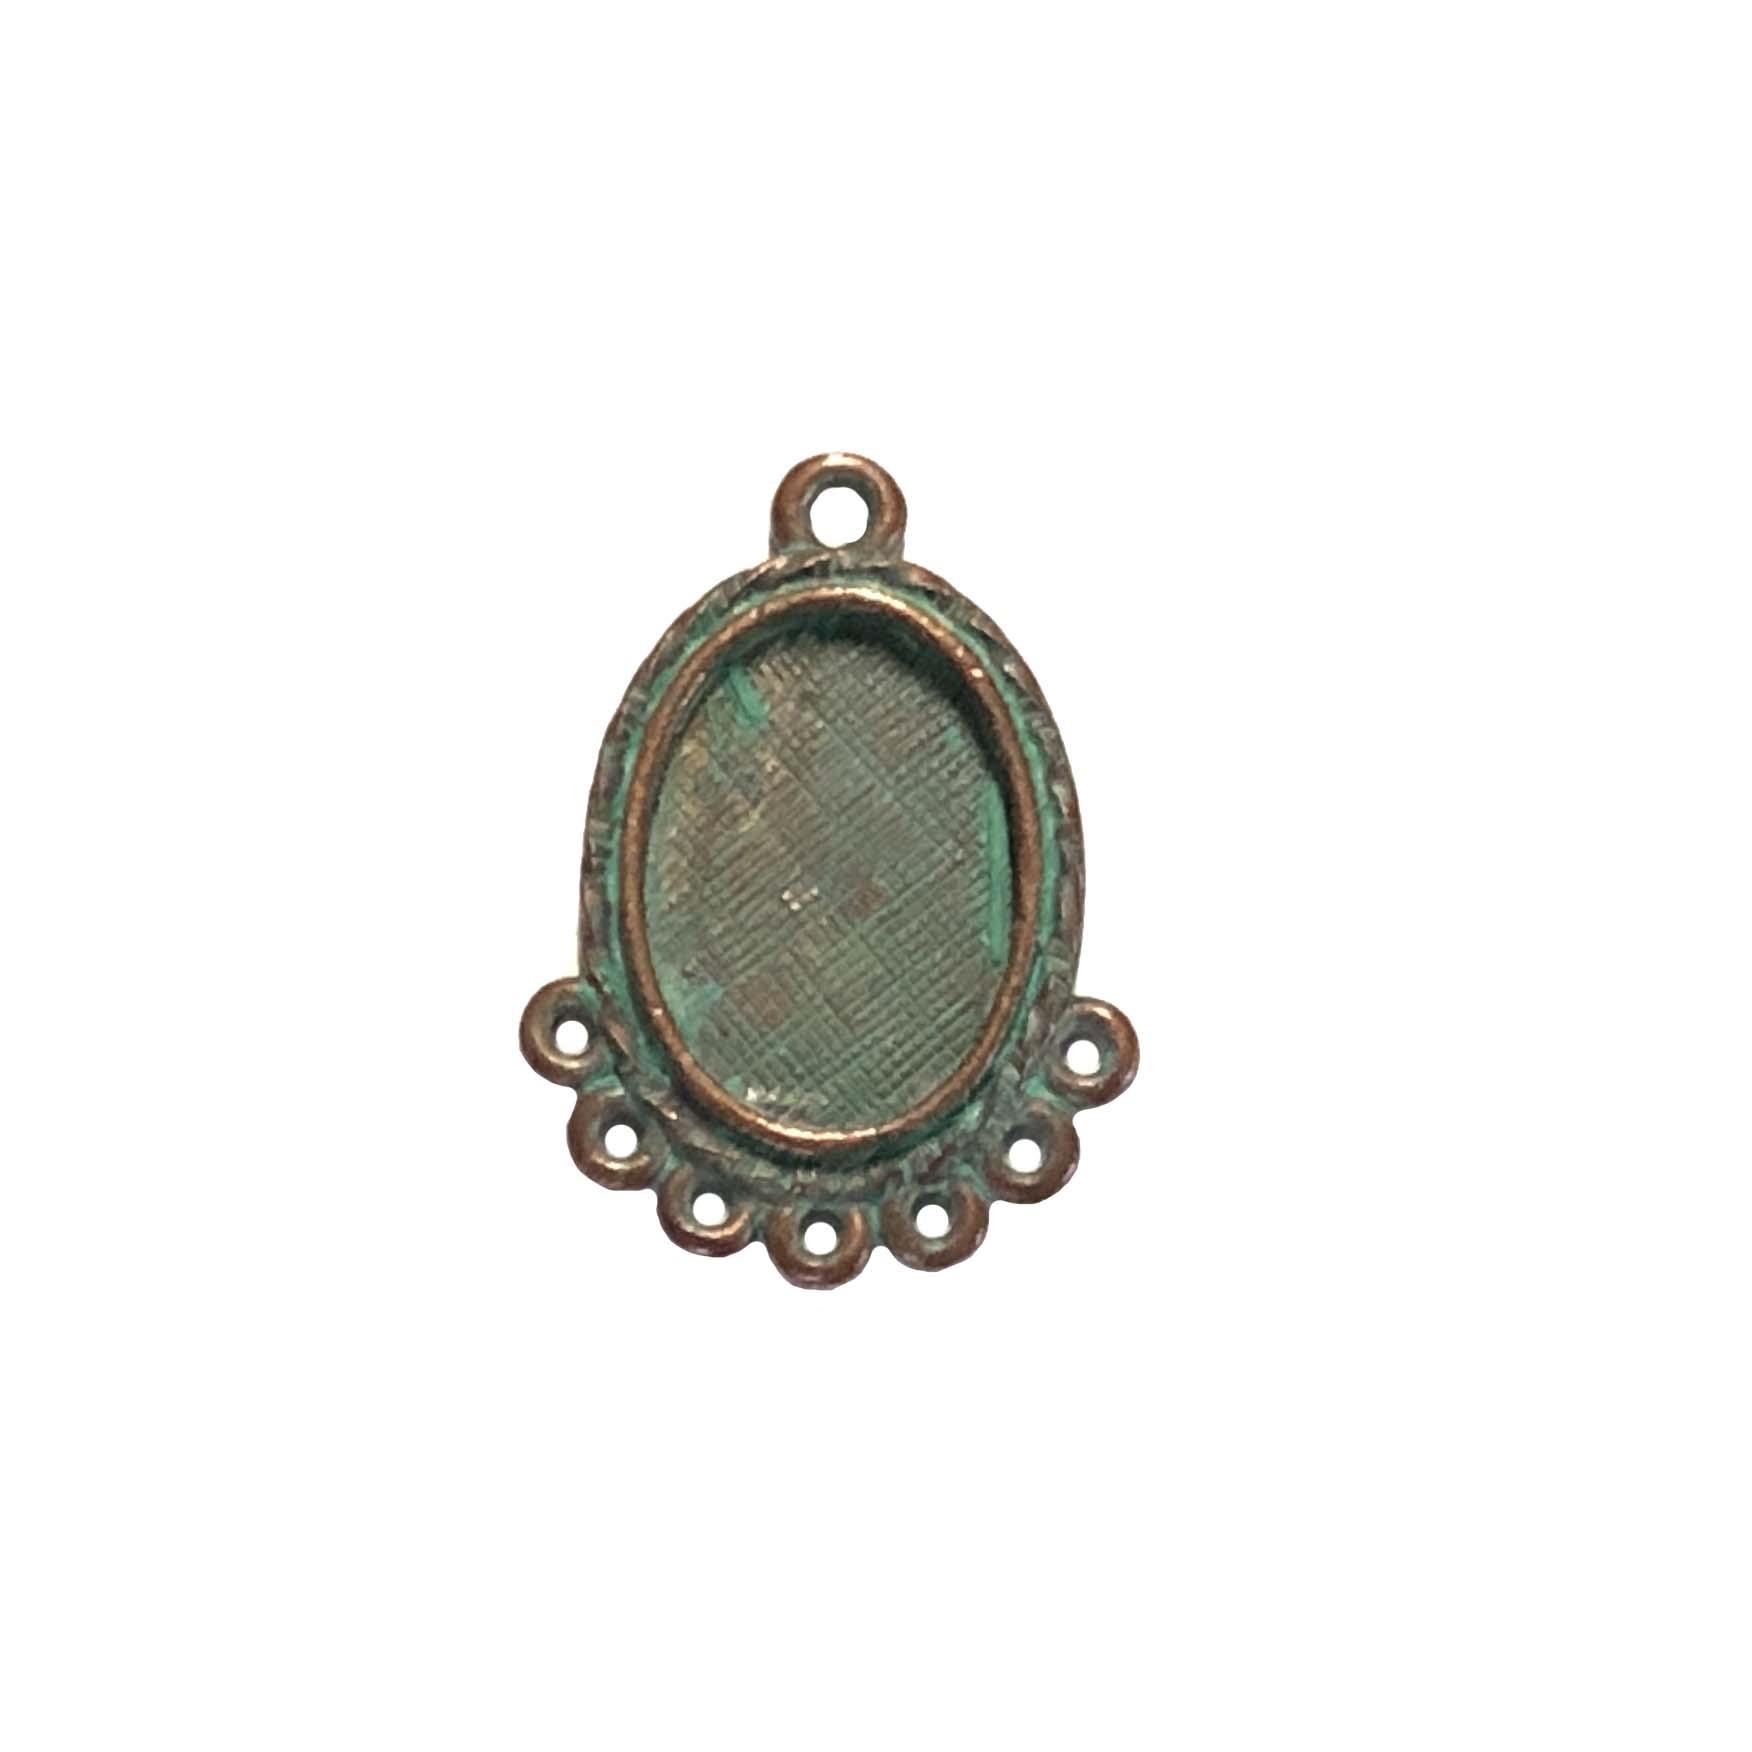 oval drop pendant, weathered copper pewter, Victorian pendant, lead free pewter, B'sue by 1928, green patina, vintage jewelry parts, nickel free, us made, 1928 Company, designer jewelry, B'sue Boutiques, gypsy style pendant, 13x10mm mount, 0289